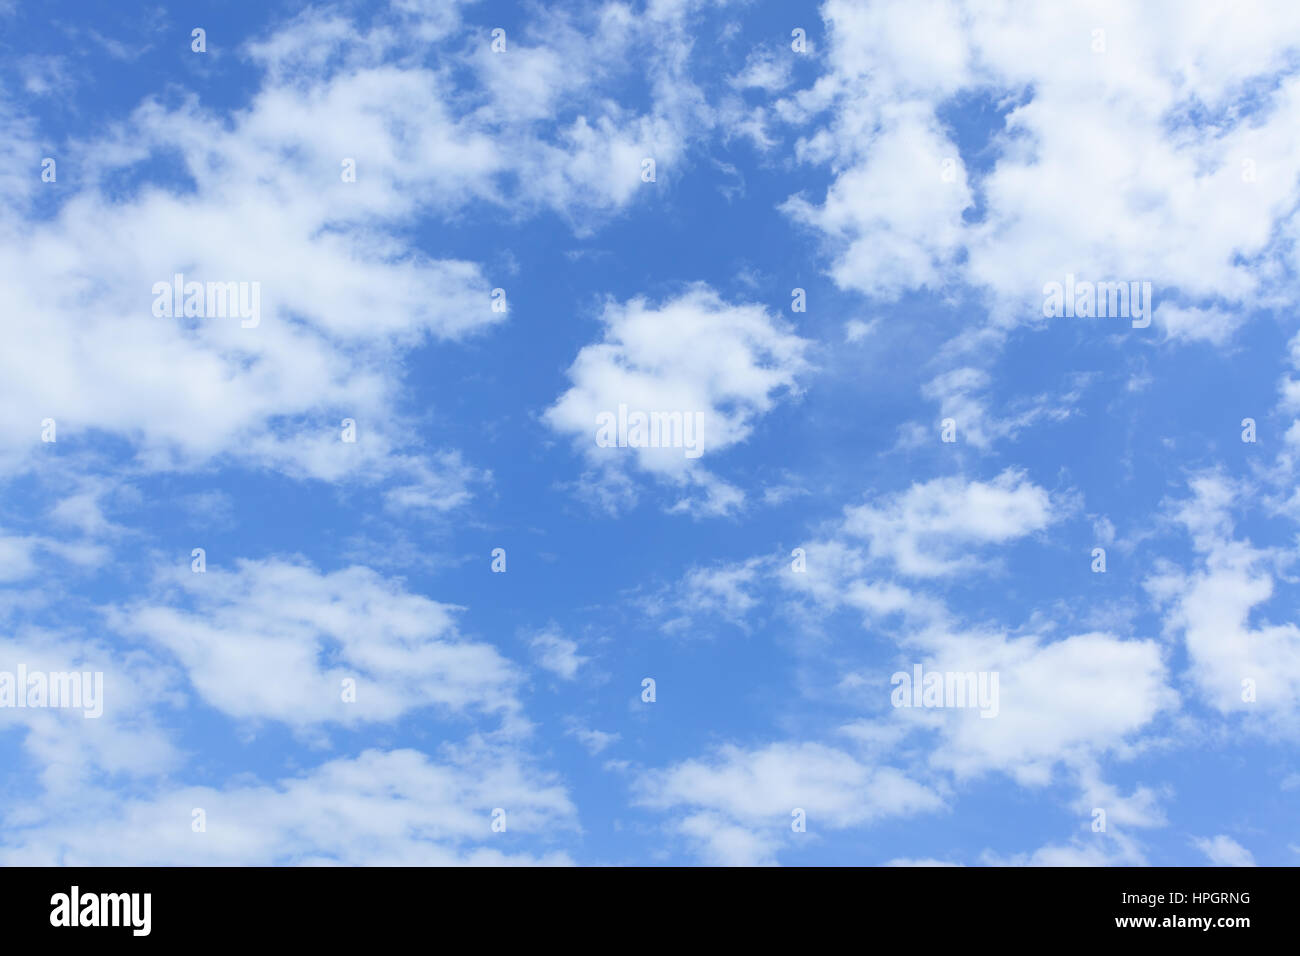 Blue sky and clouds - may be used as background Stock Photo